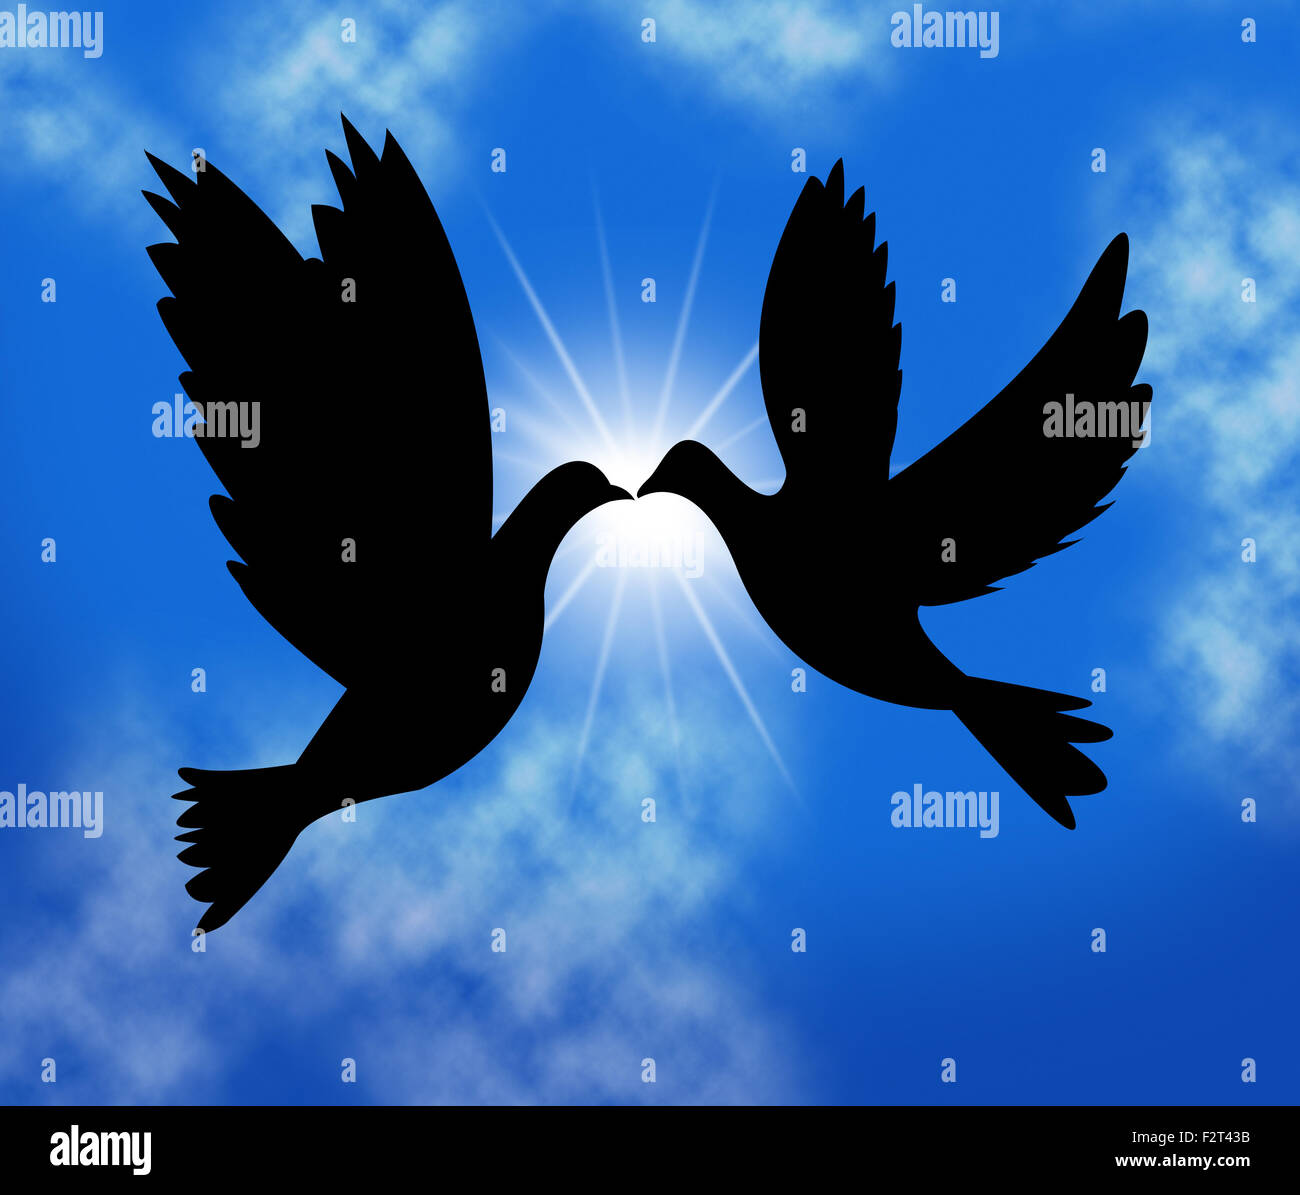 love peace war definition essay May we continue our journey with peace, faith, hope and love no effort is too small to make a difference with god's help we can transform our communities and world from one of violence and war to one of peace and dignity for all.